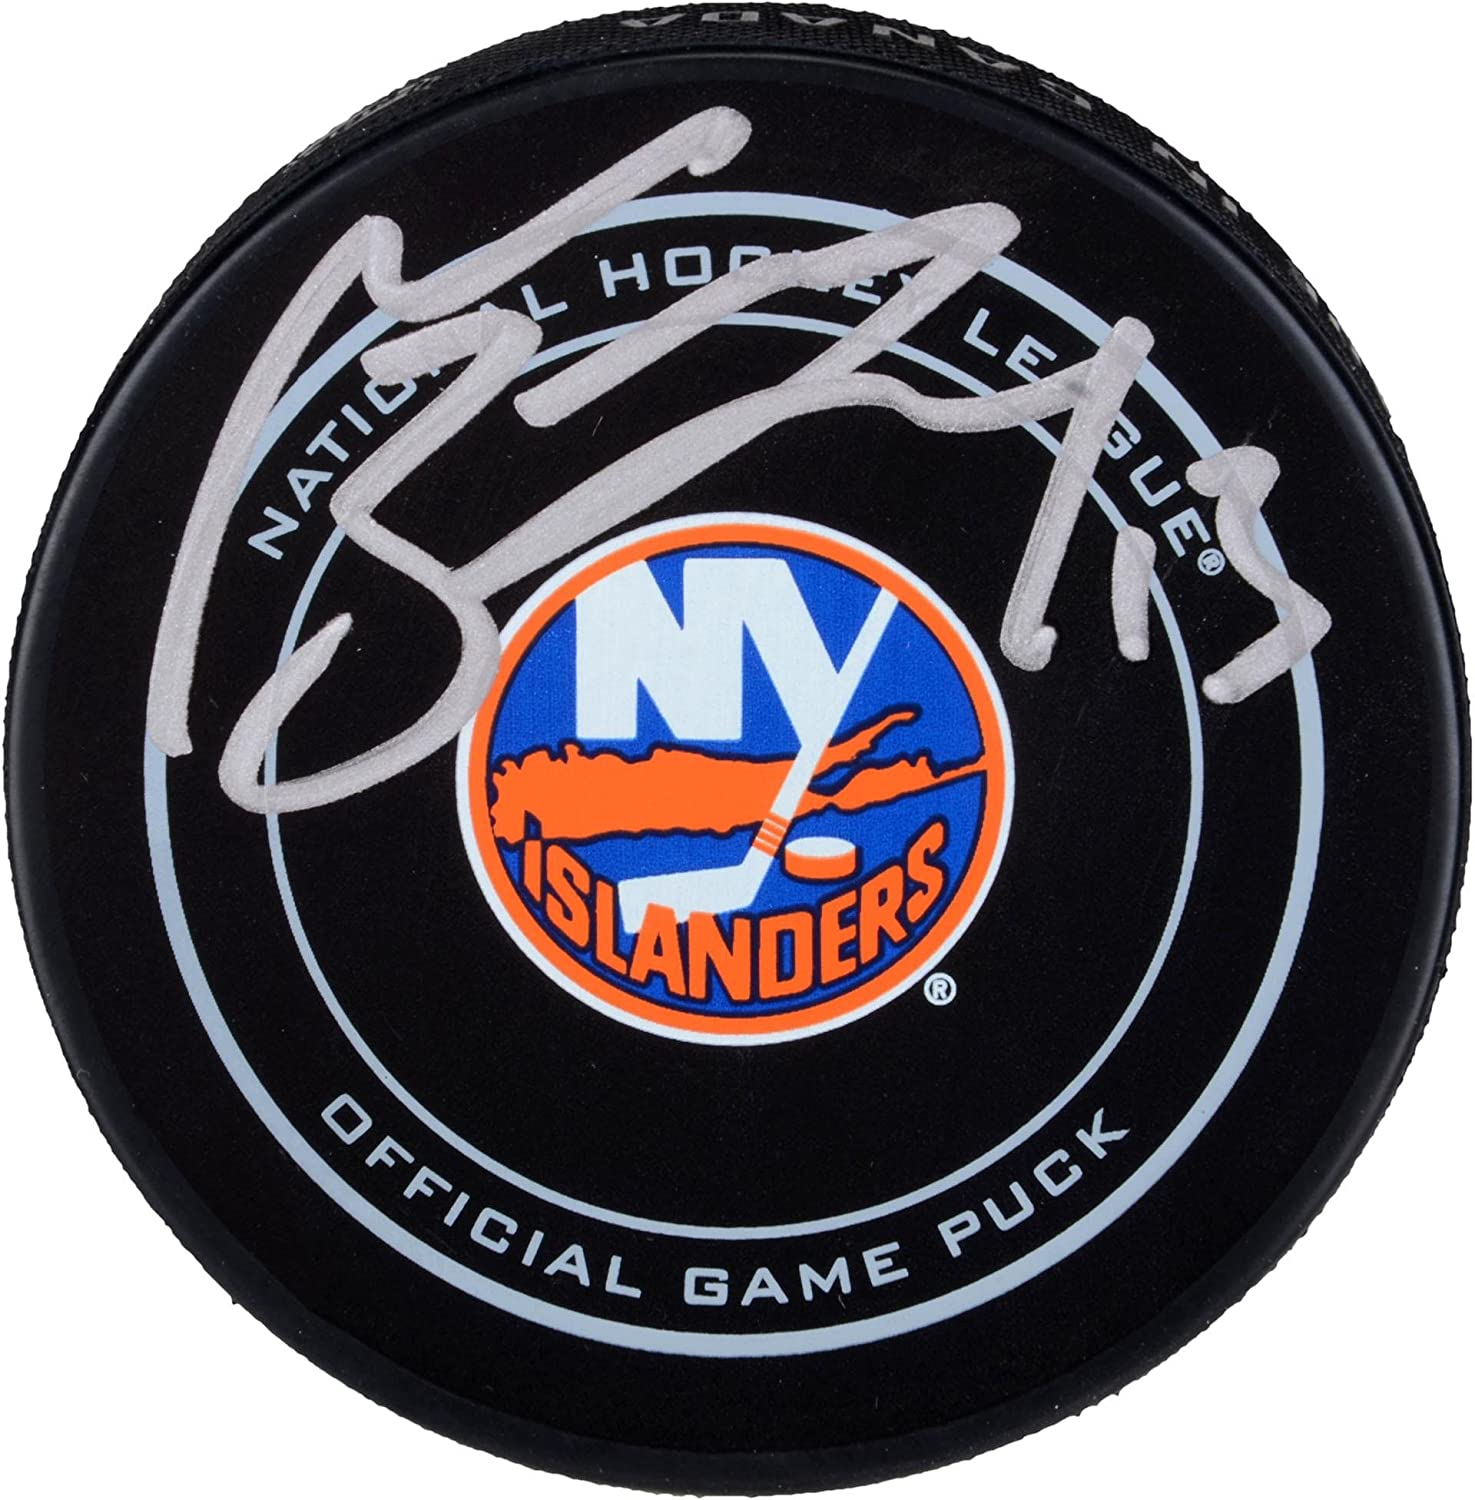 Mathew Barzal New York Islanders Autographed Official Game Puck - Fanatics Authentic Certified - Autographed NHL Pucks